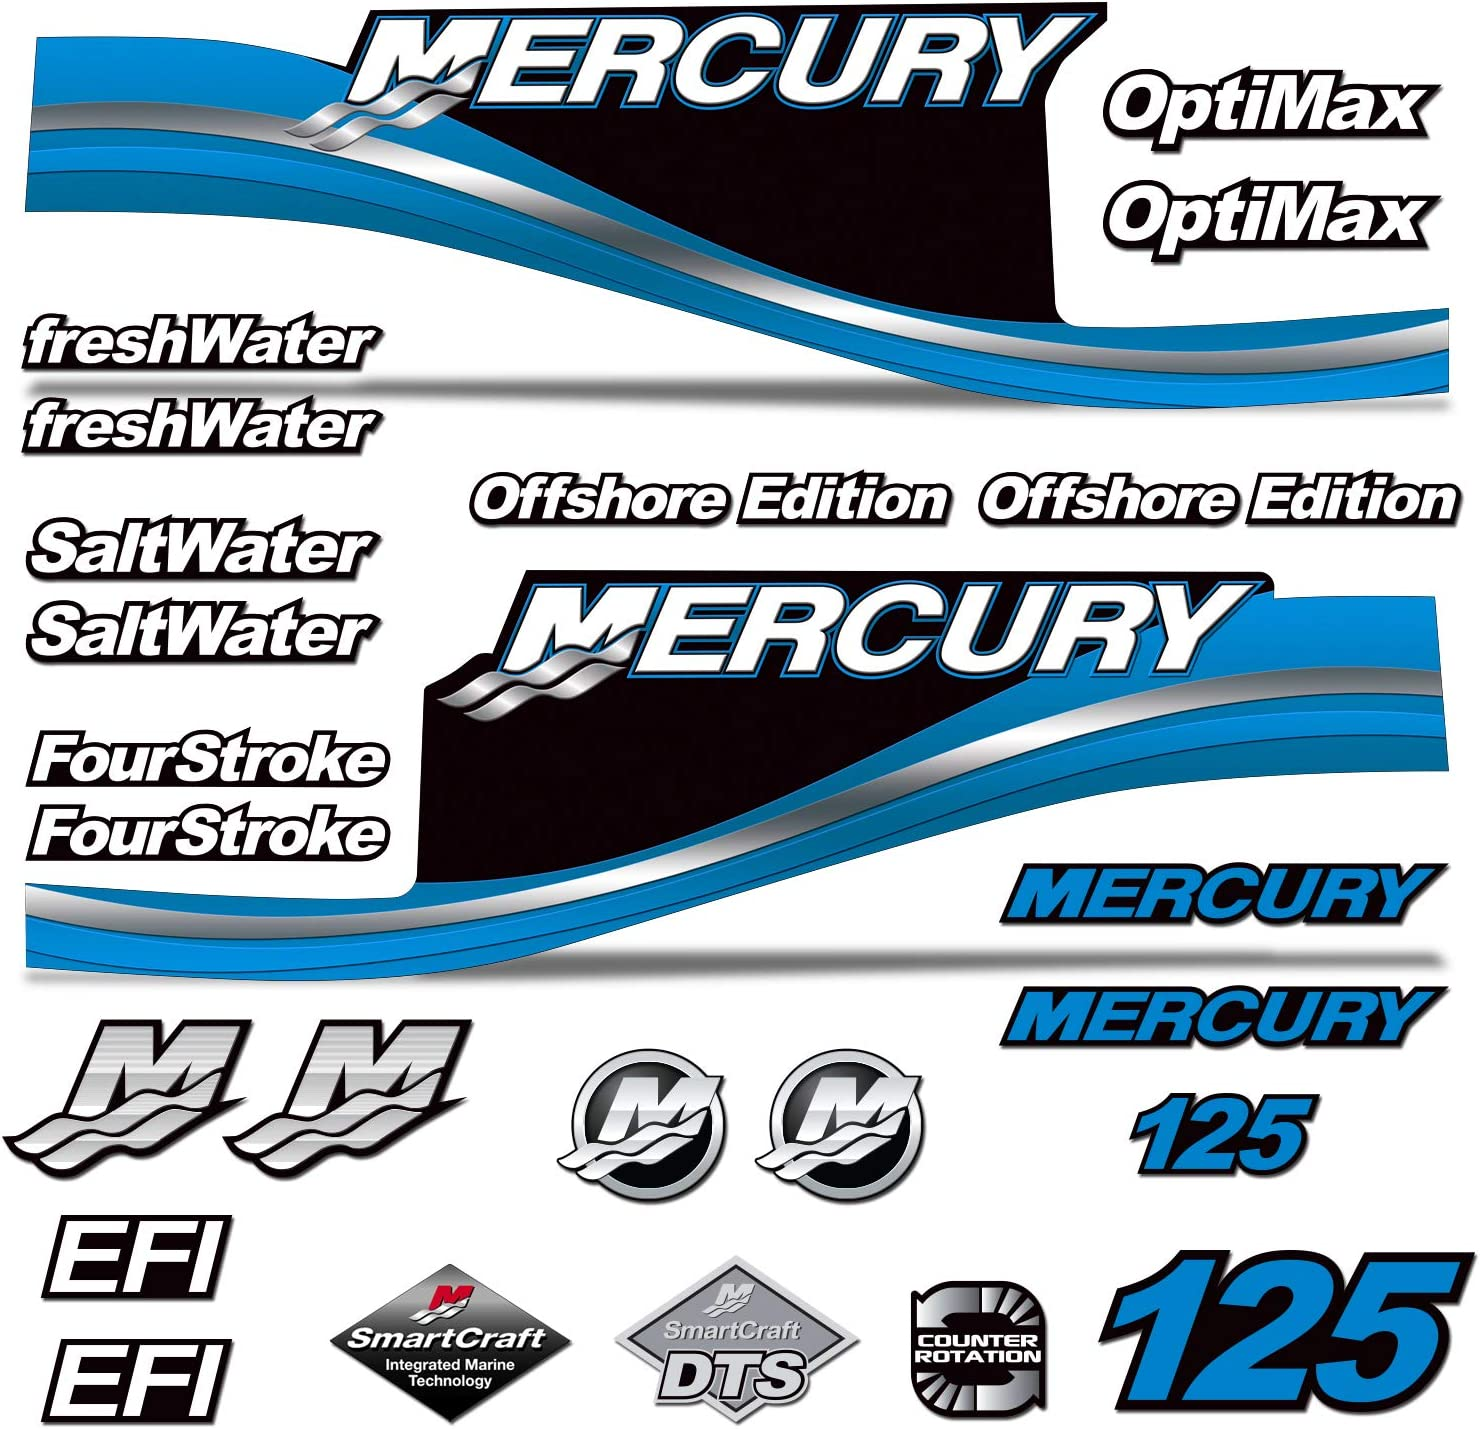 AMR Racing Outboard Engine Motor Sticker Decal Graphics kit for Mercury 125 Blue